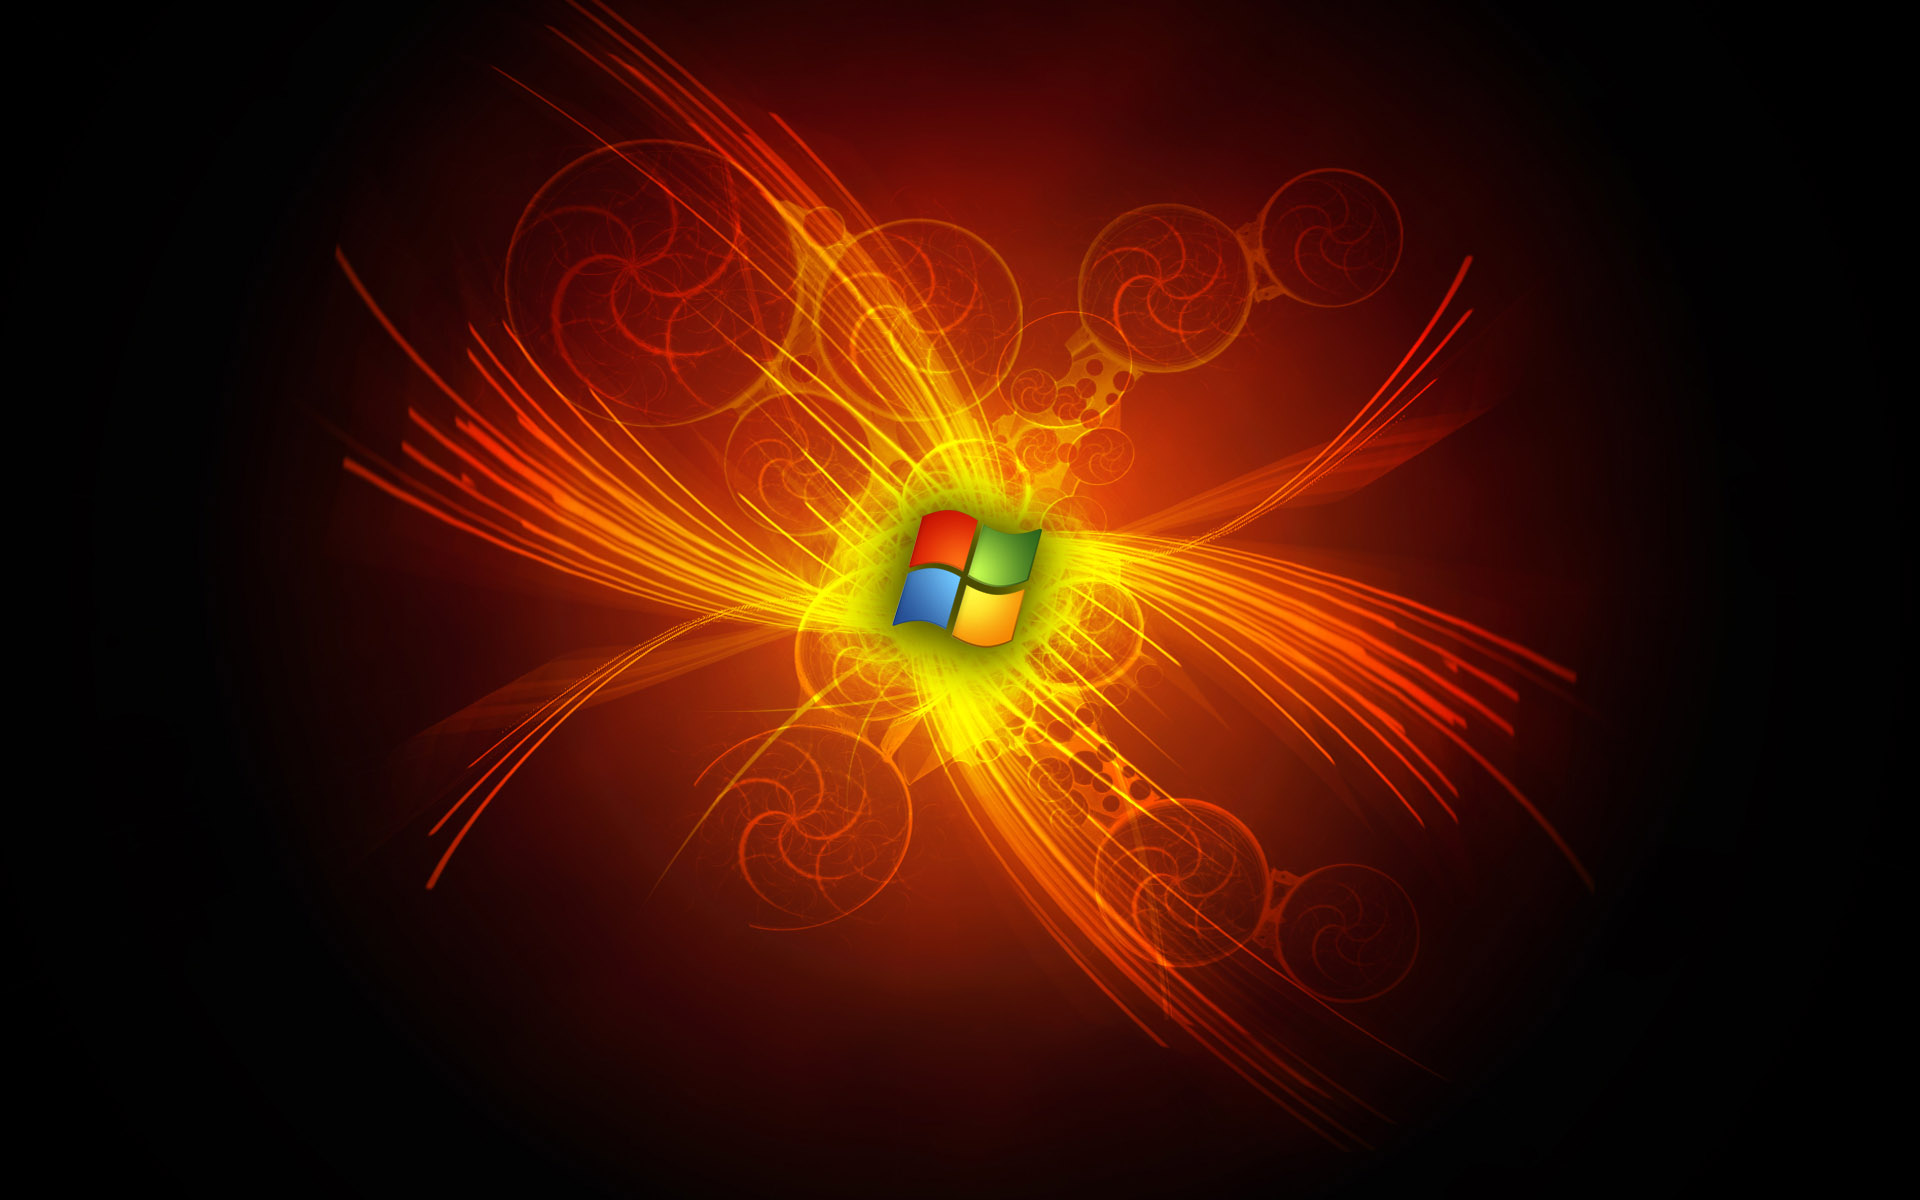 Teknologi - Windows  - Abstrakt - Intense - Microsoft - Logo - Seven - Se7en - Eld - Flame - Cool - Windows Home Server 2100 Bakgrund